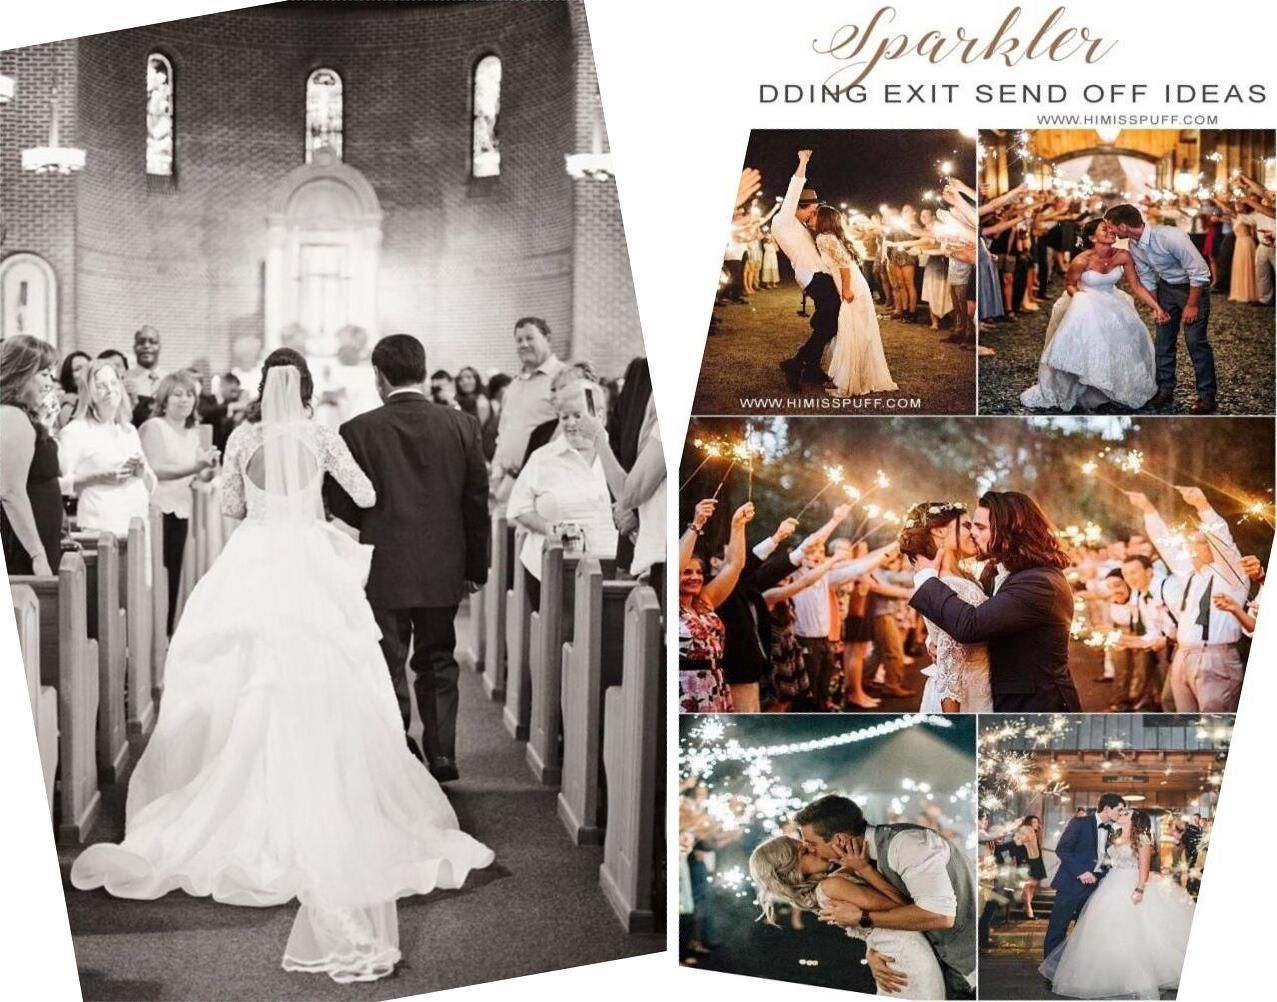 Famous Wedding Photographers Cool Wedding Photography Cool Wedding Pics Wedding Photos Wedding Pics Our Wedding Day